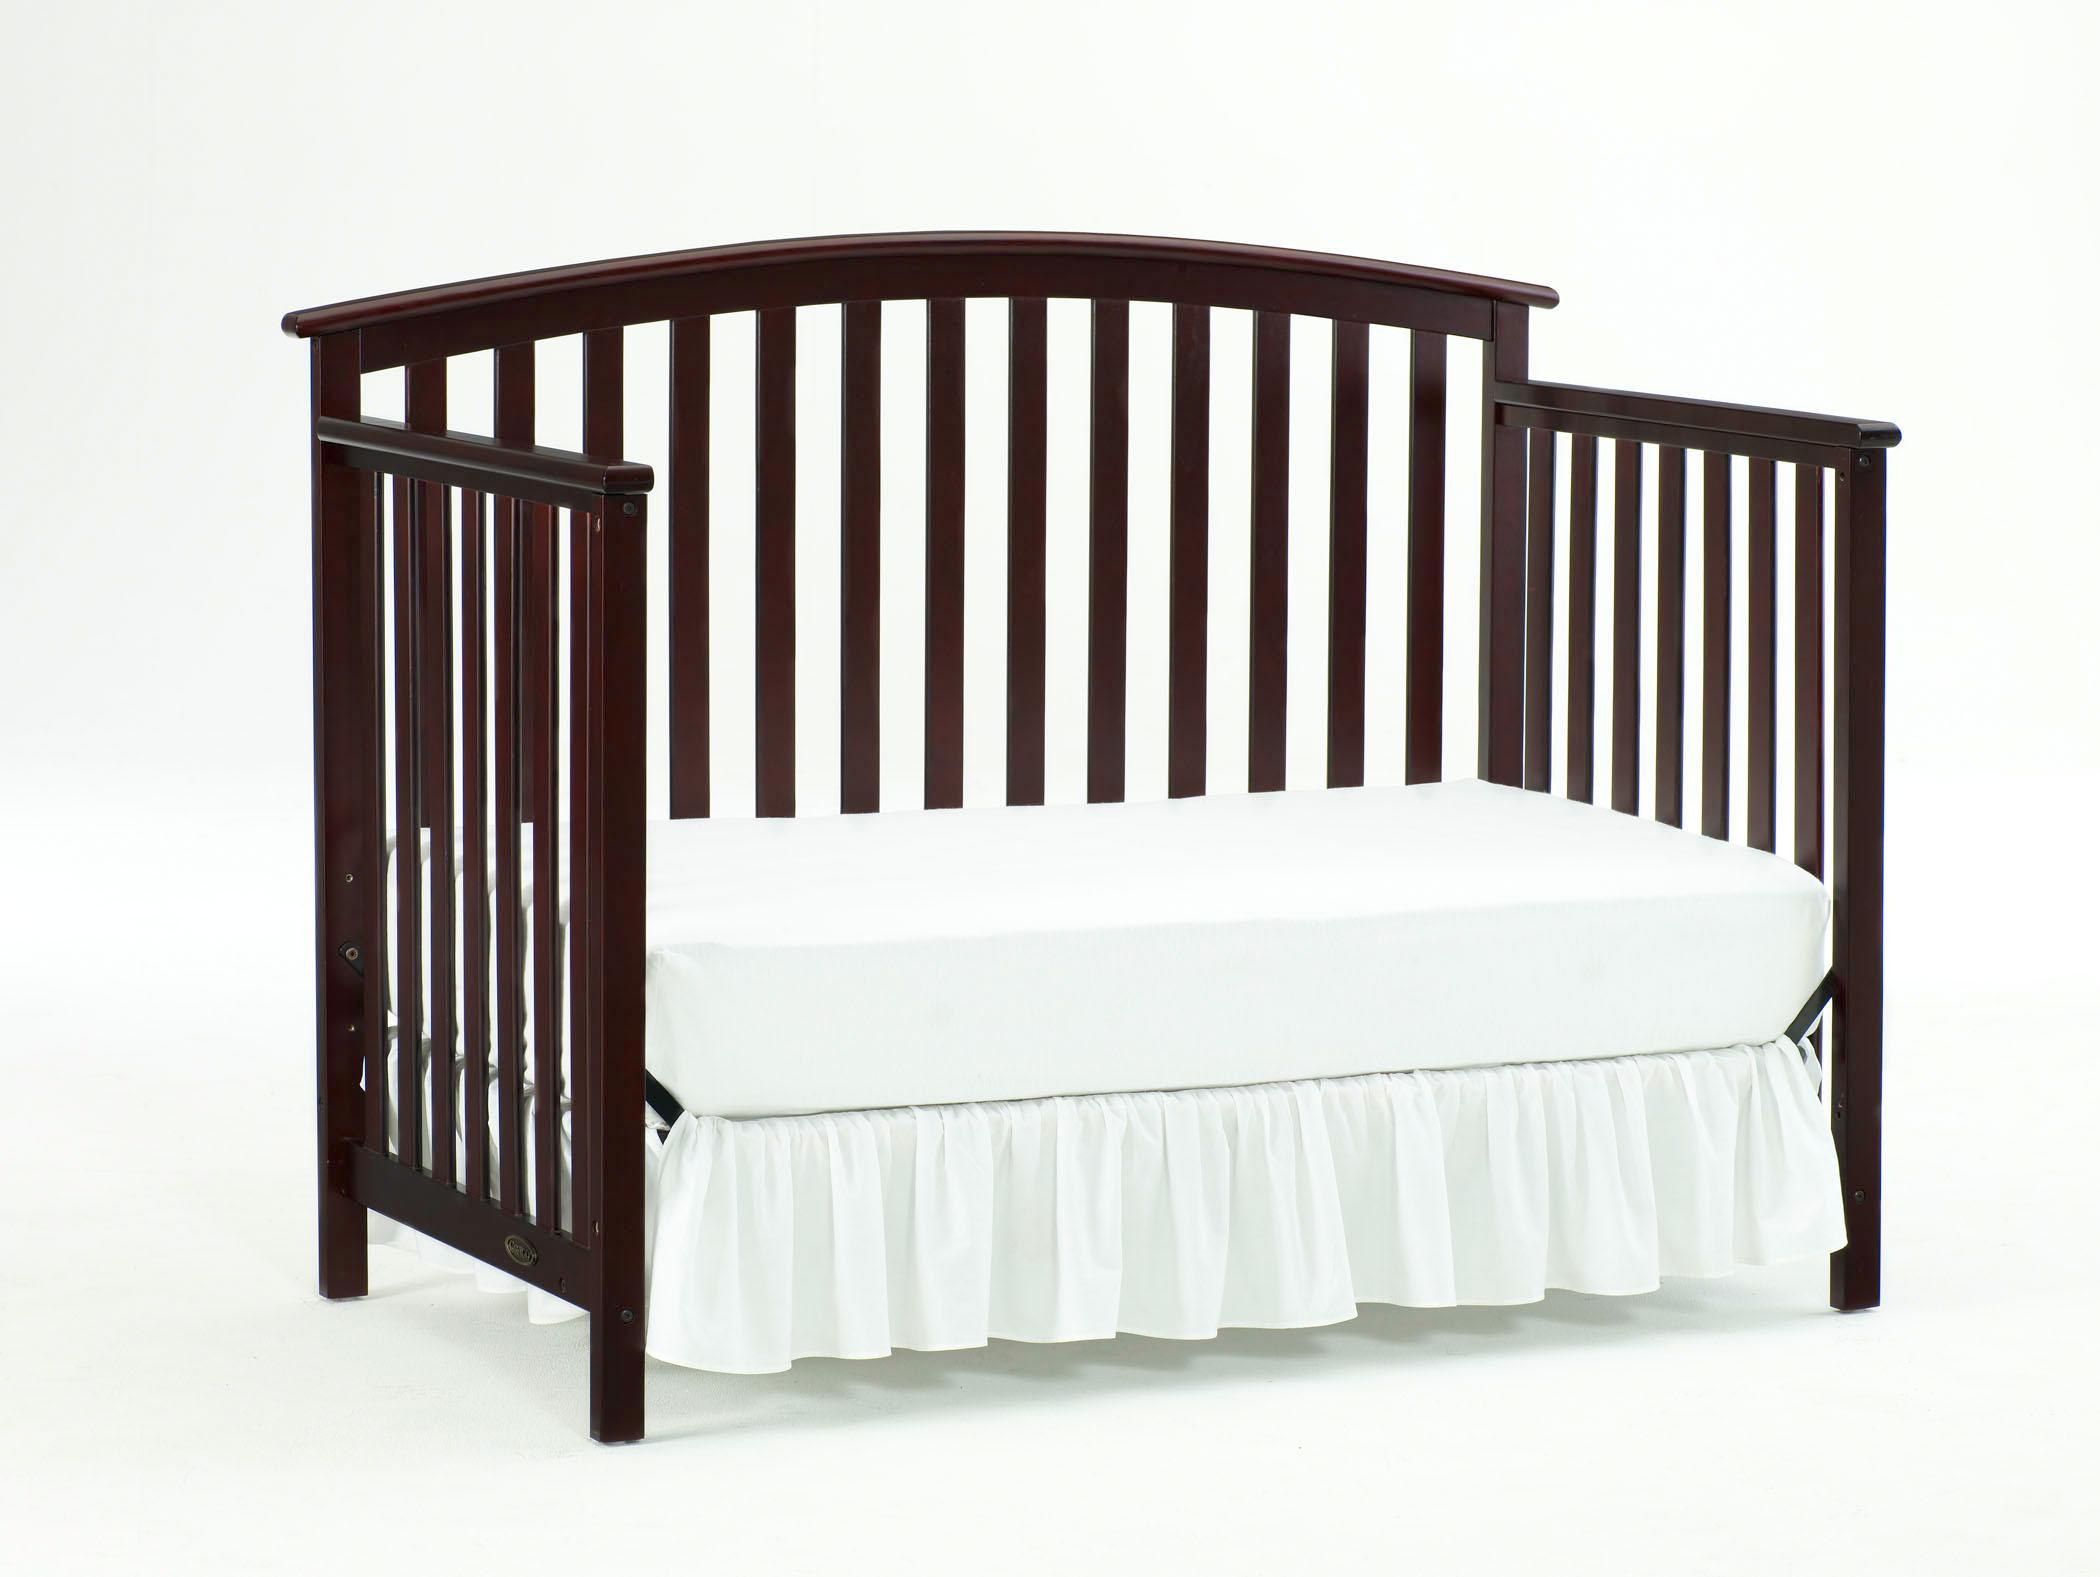 Amazon.com : Graco Freeport Convertible Crib, Espresso : Baby